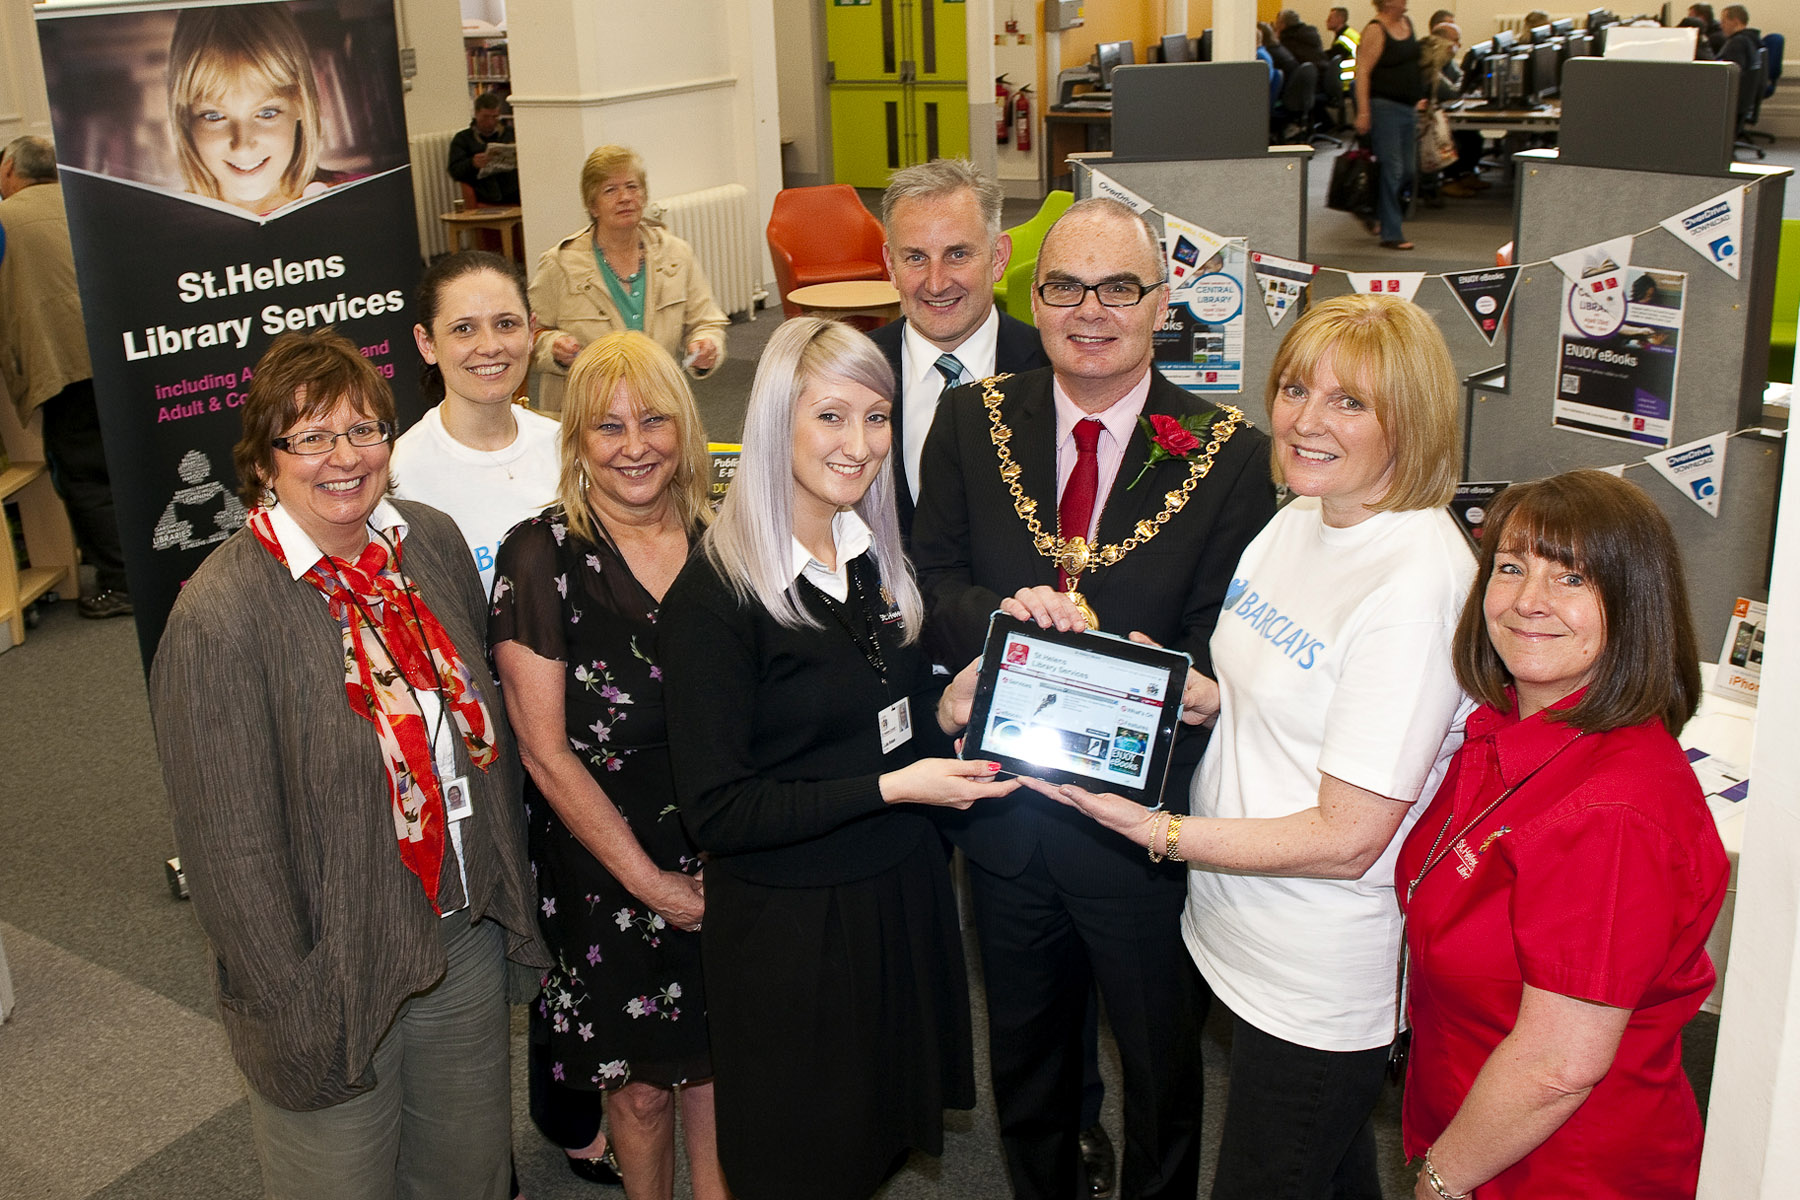 Sue Williamson, pictured far left, at the offiicial e-book launch today, with library staff and guests including the Mayor of St Helens Andy Bowden